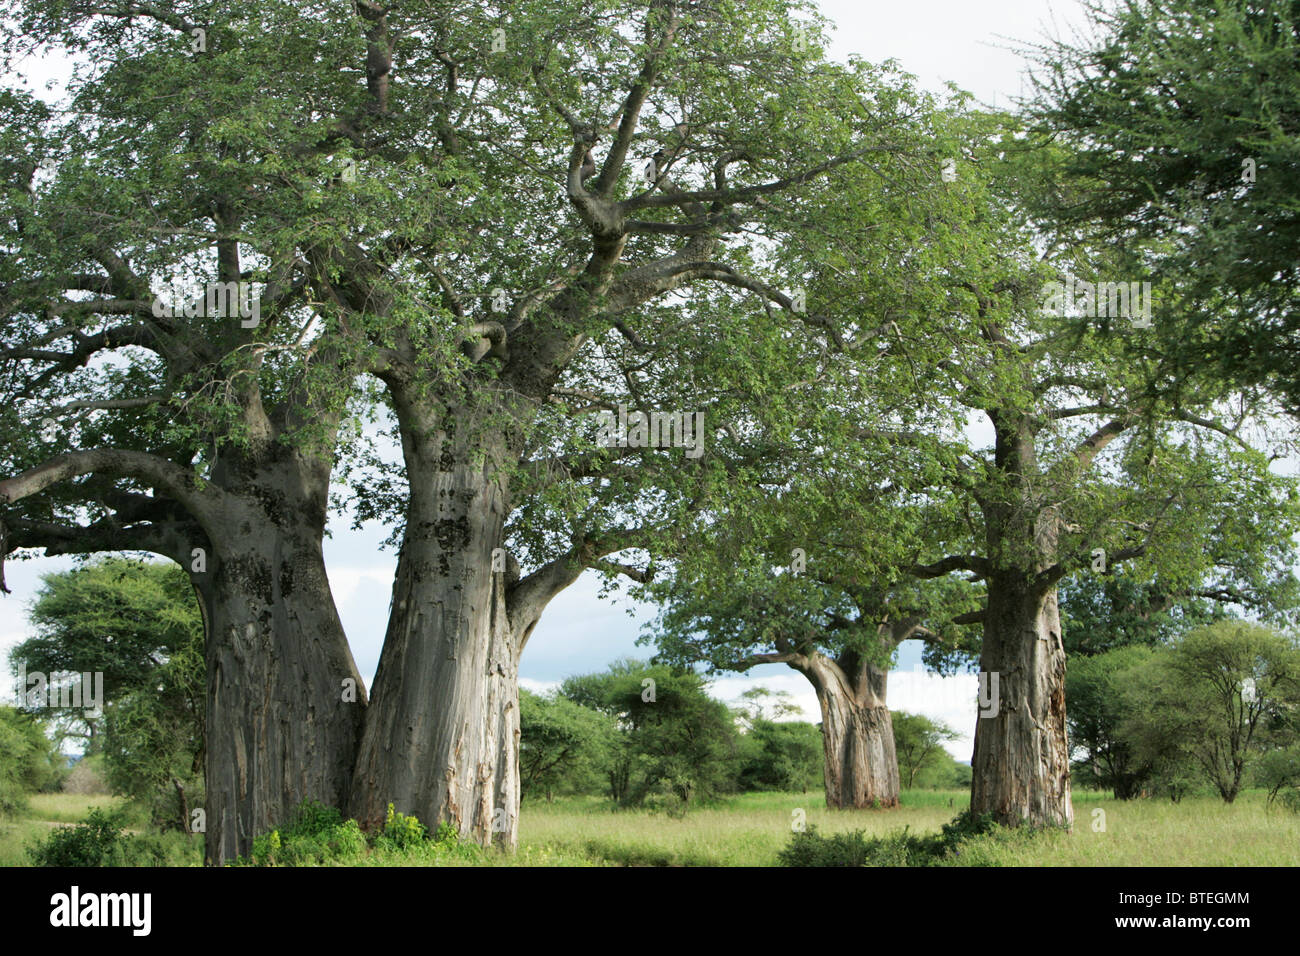 Cluster of Baobab trees growing closely together - Stock Image